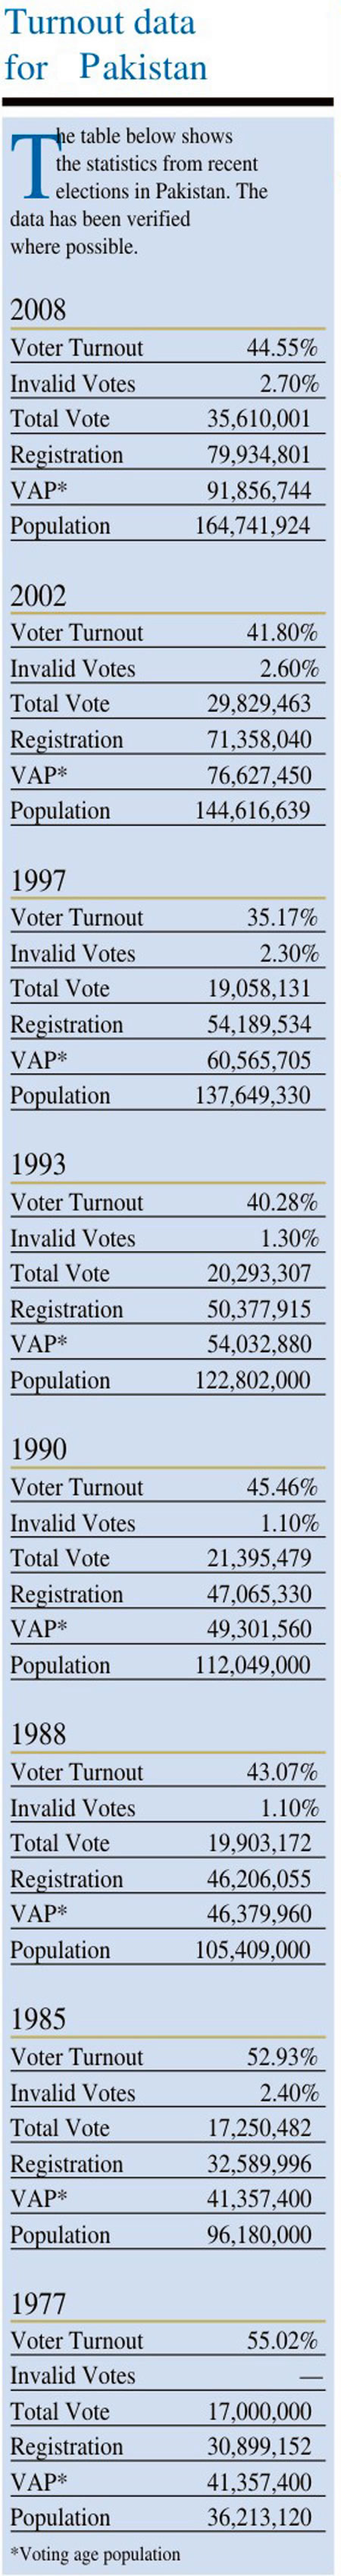 Turnout data for Pakistan